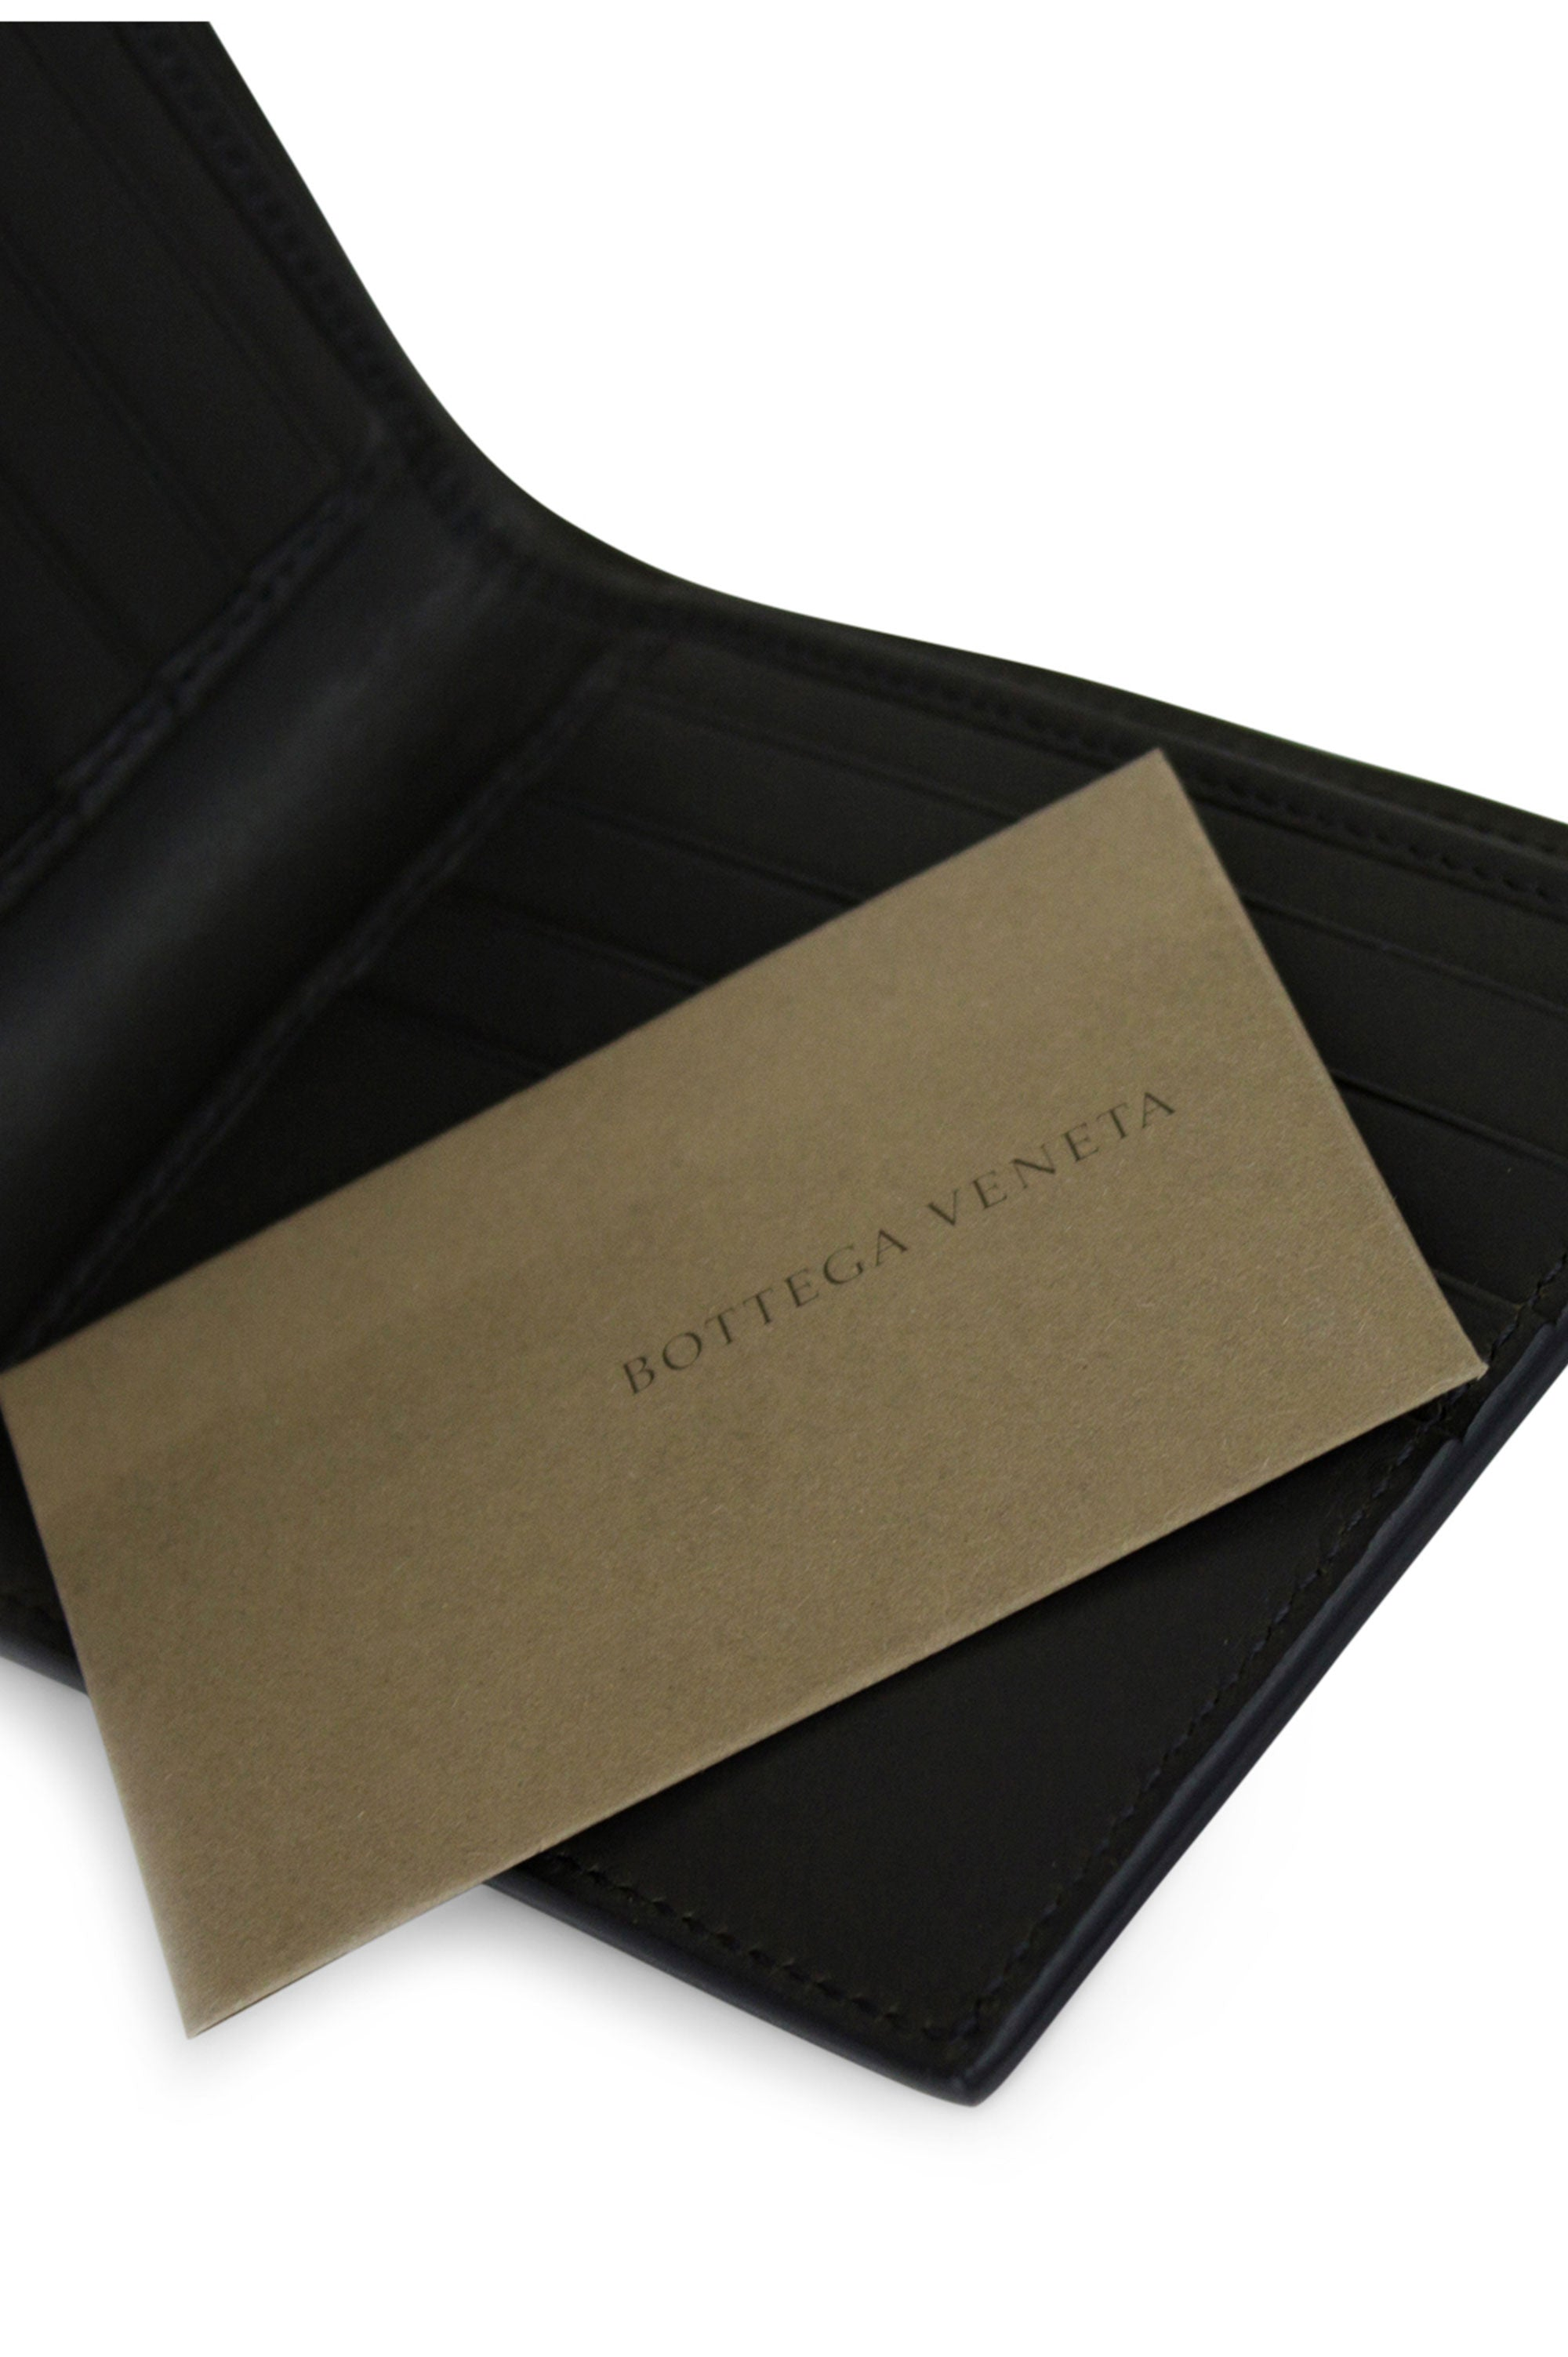 BOTTEGA VENETA Wallet Grey